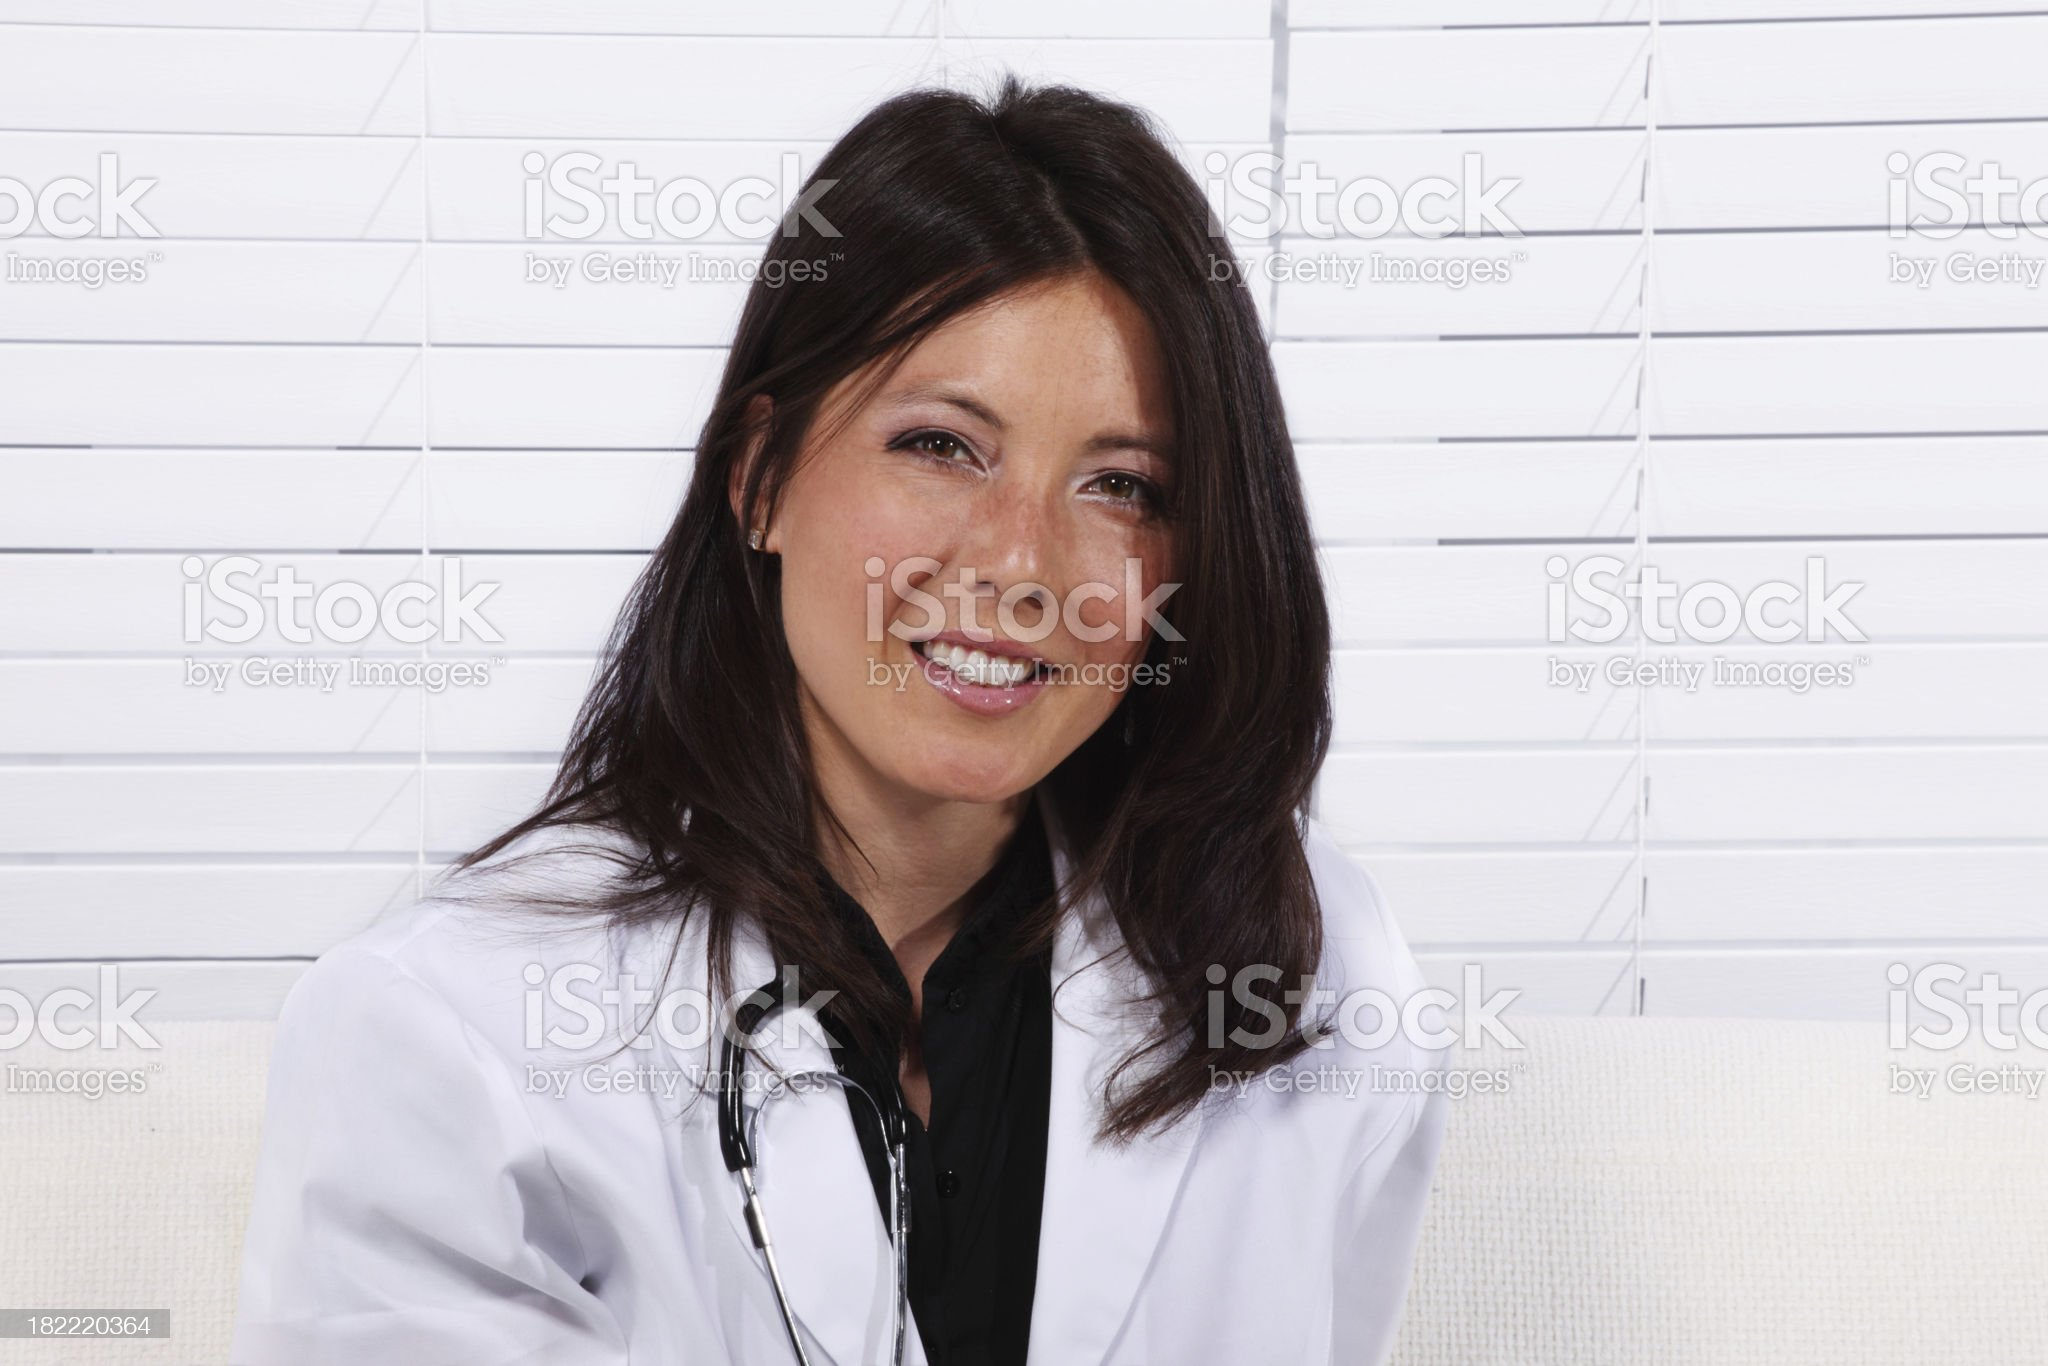 Young female doctor royalty-free stock photo